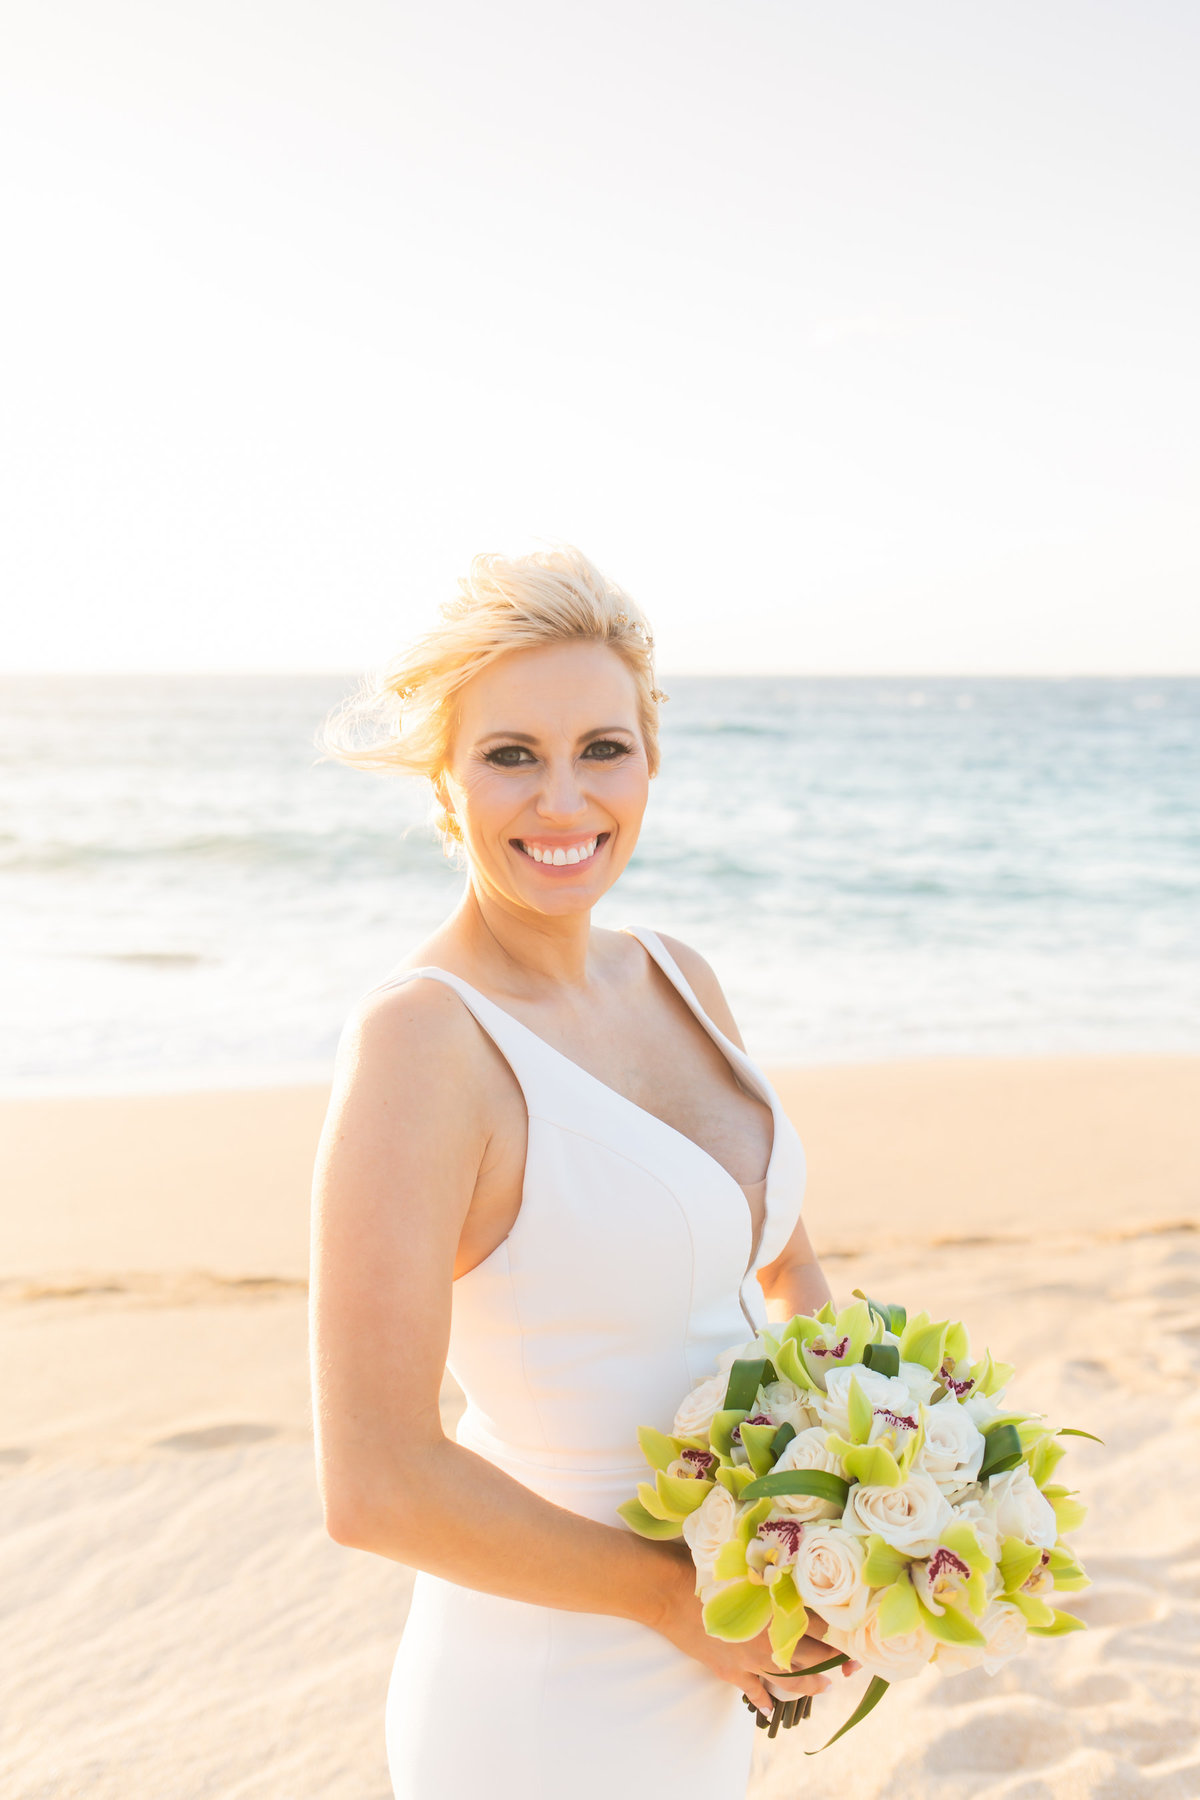 Maui wedding photography - bride with bouquet